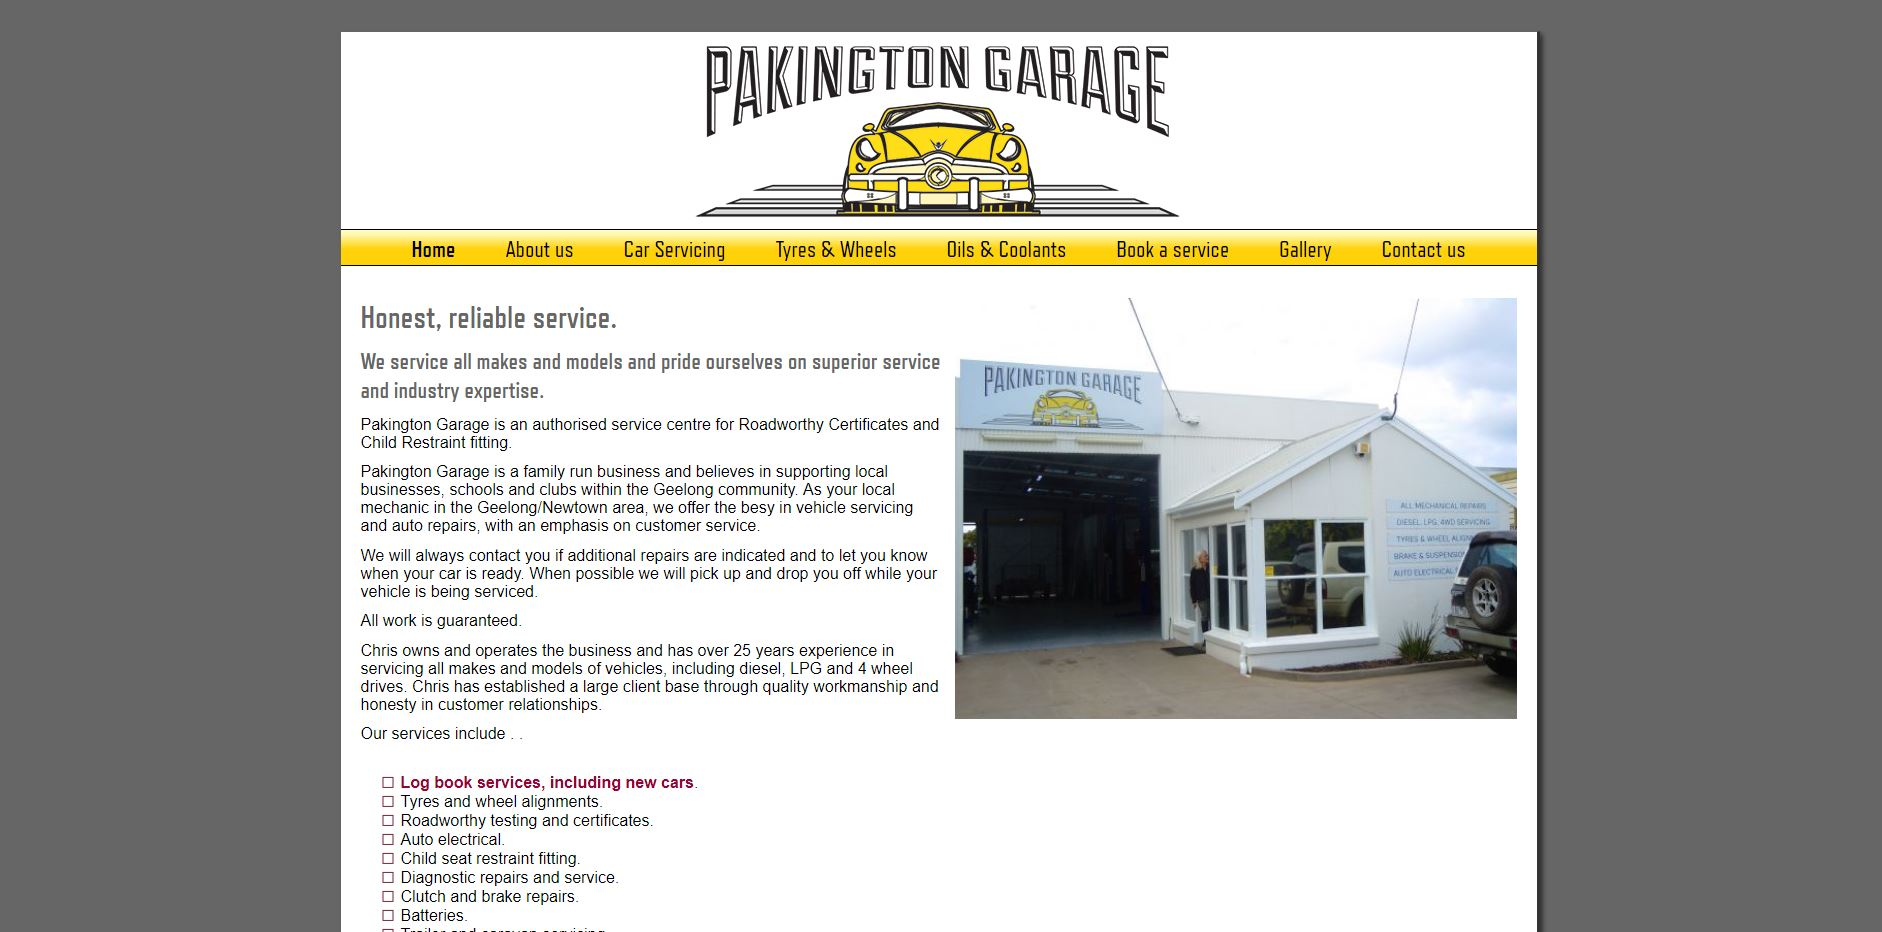 pakingtongarage.com.au